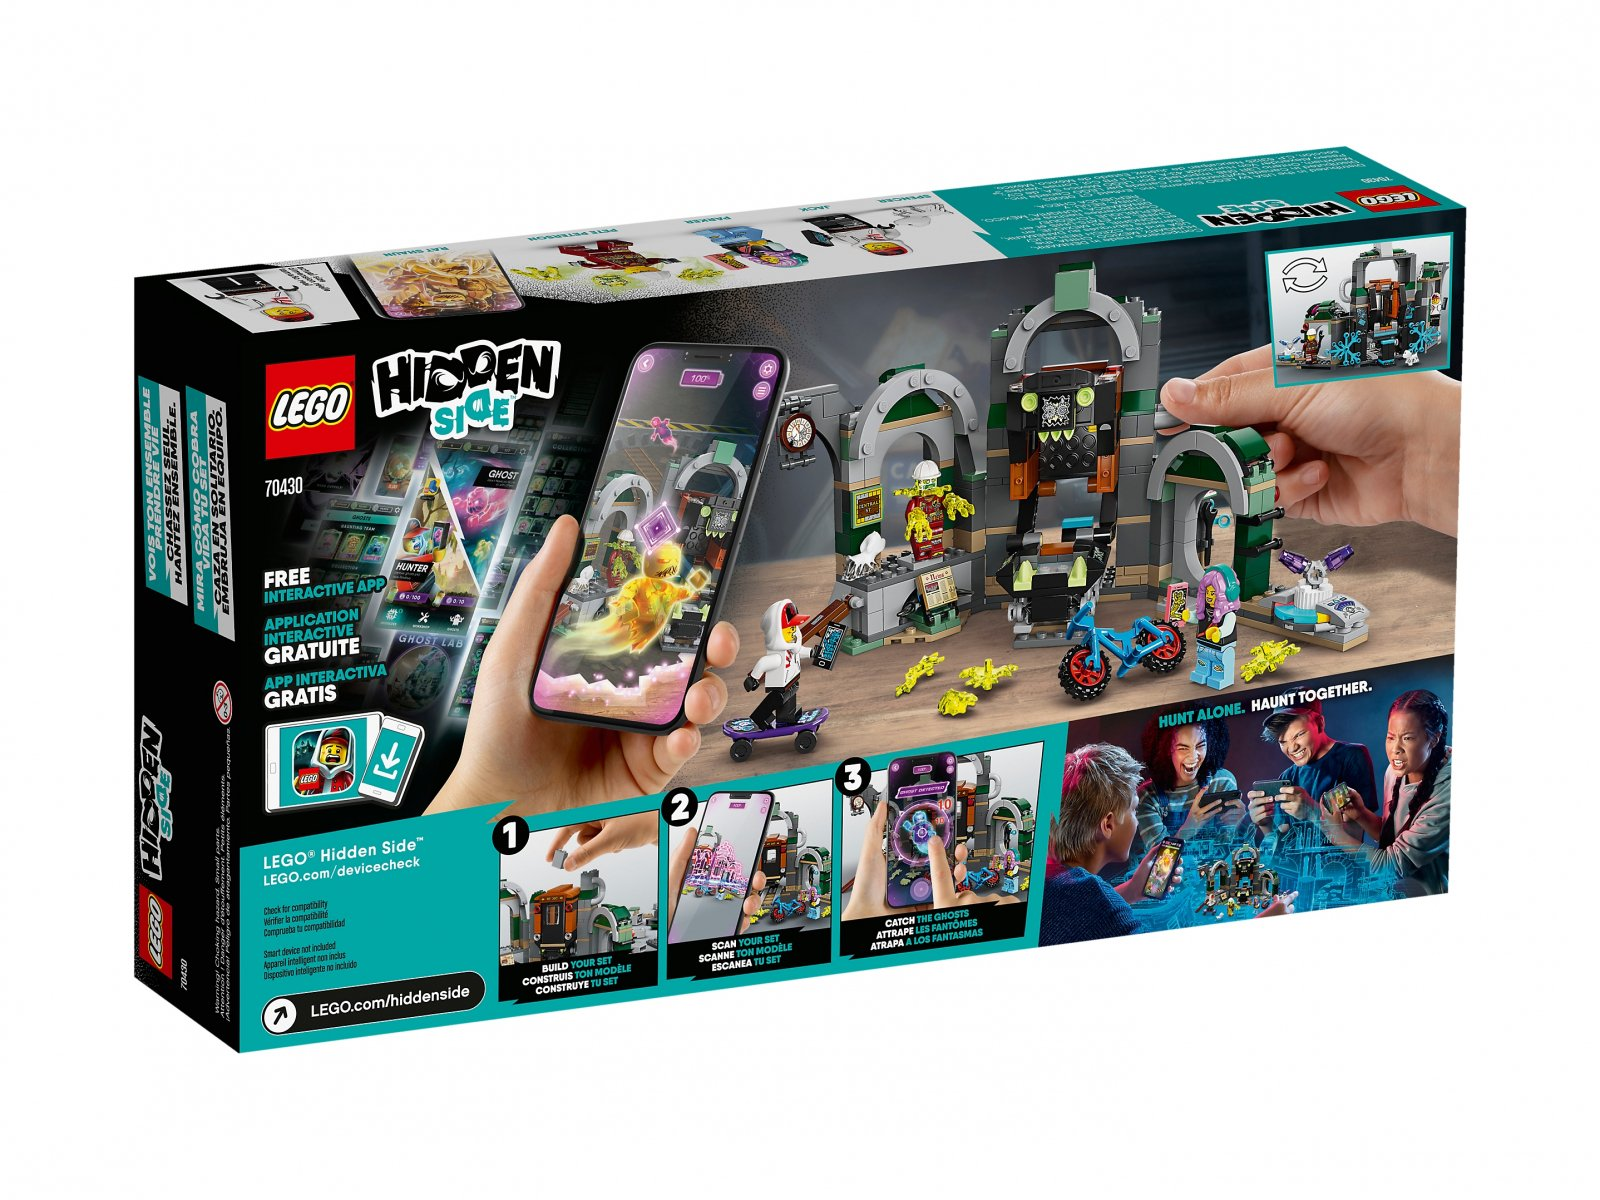 LEGO Hidden Side™ 70430 Metro w Newbury